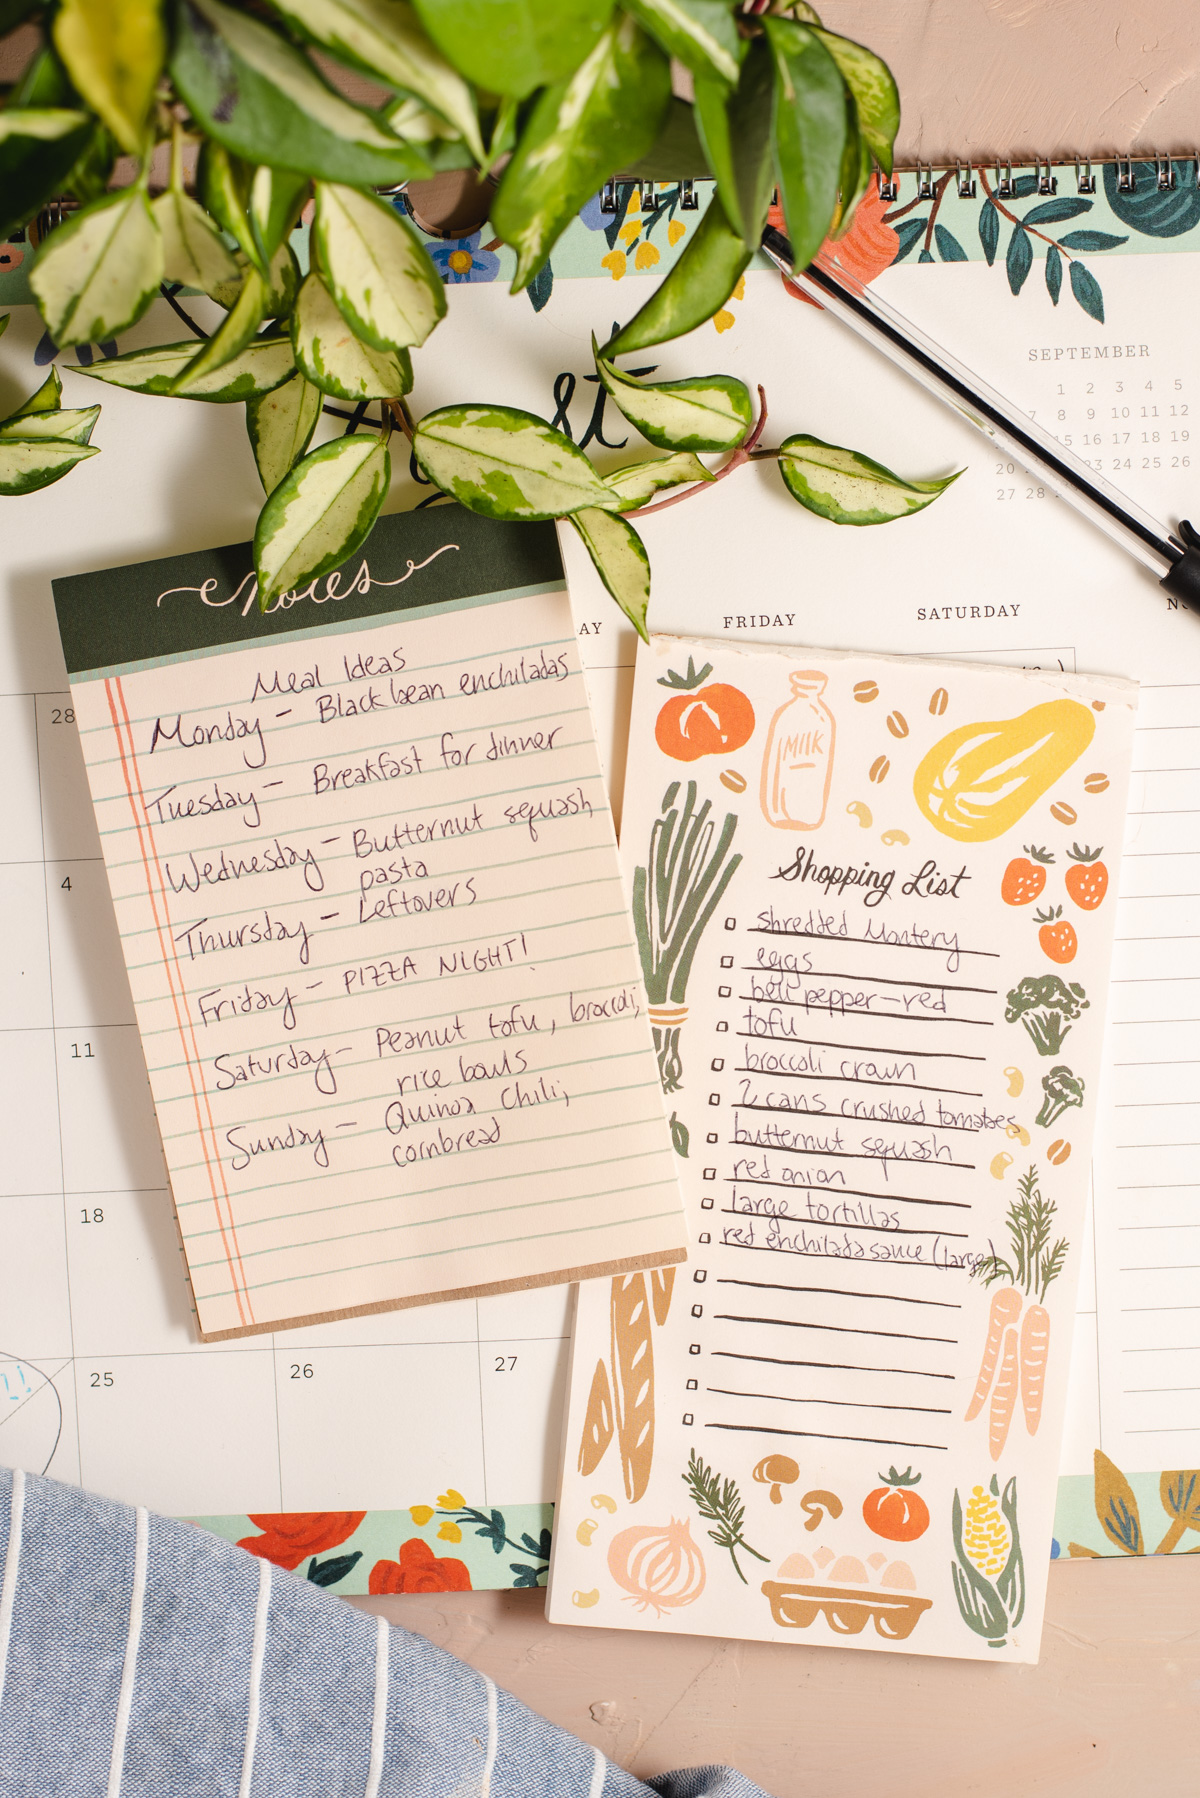 Shopping list and meal plan list sitting next to a plant vine